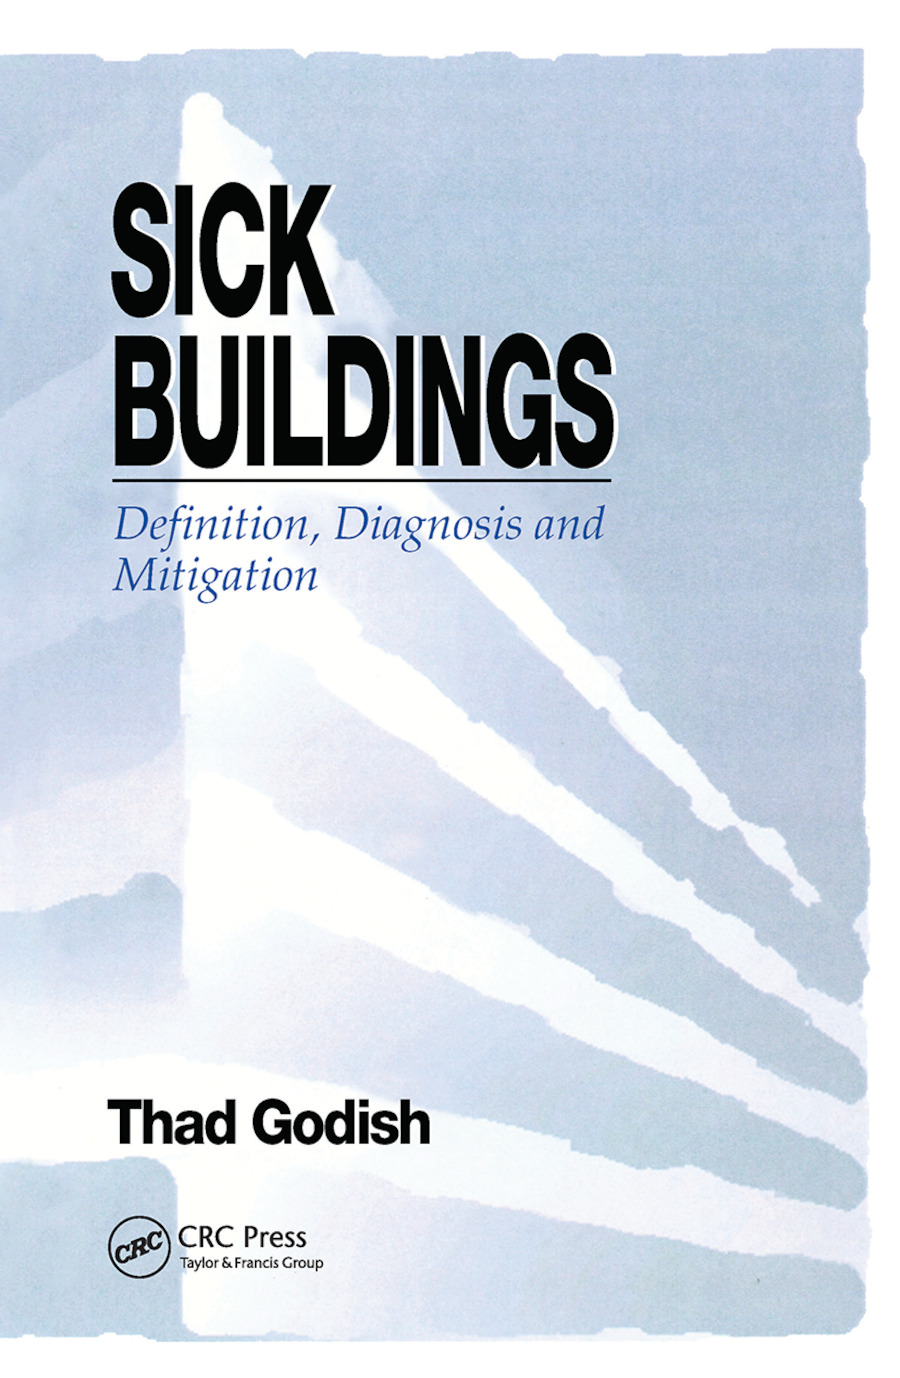 Sick Buildings: Definition, Diagnosis and Mitigation book cover